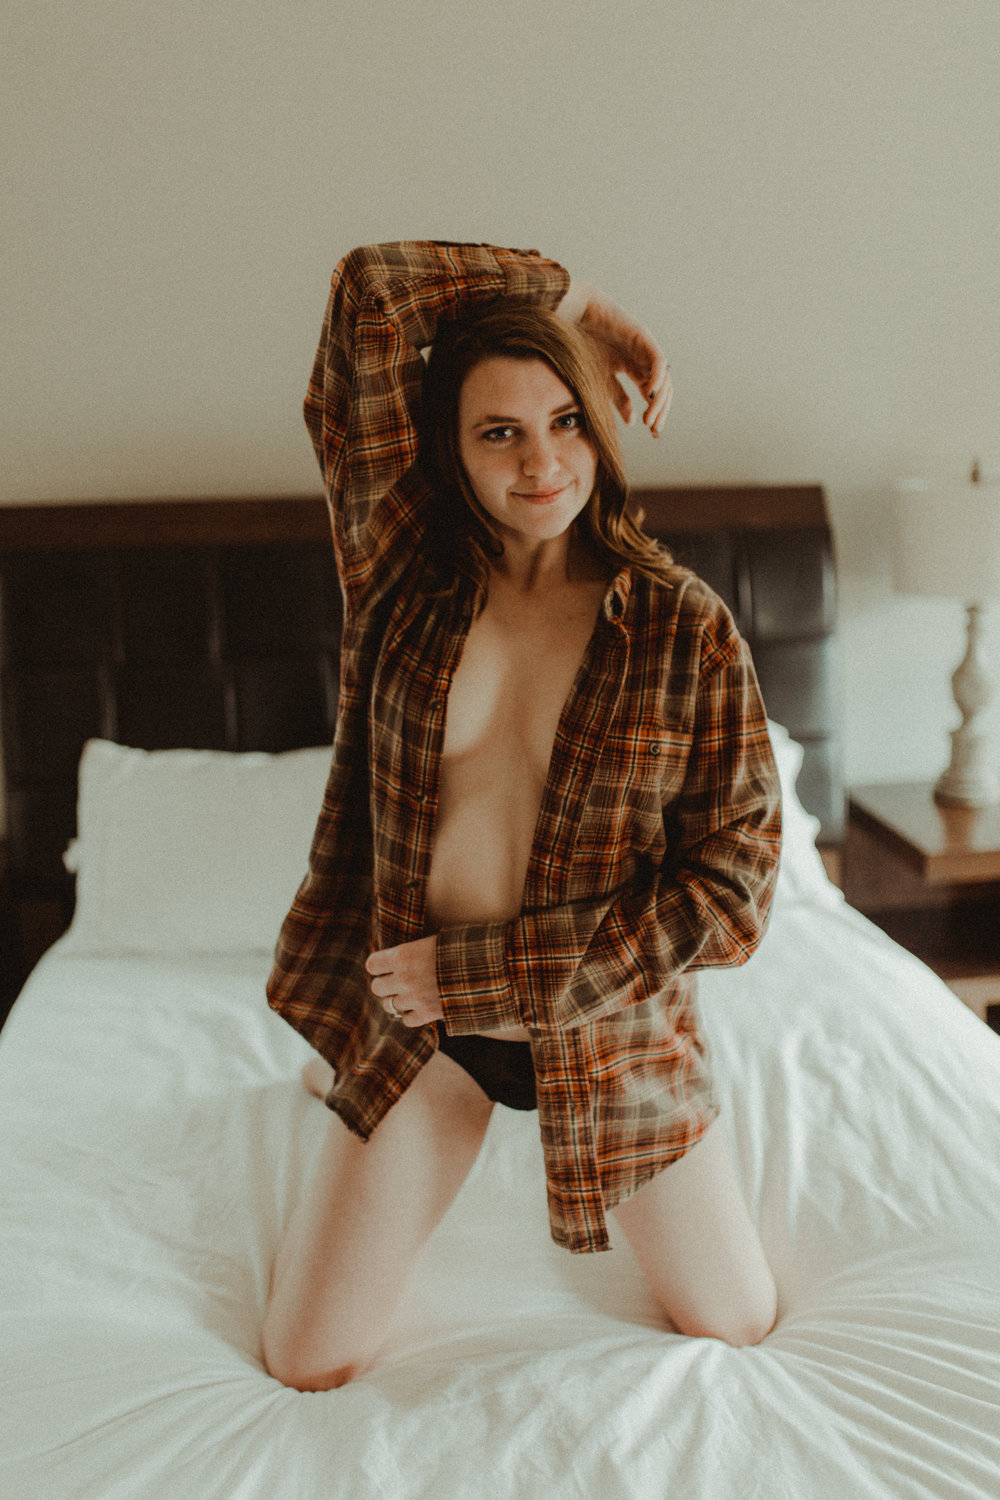 Seattle Boudoir Photographer - Portland Boudoir Photography - Seattle Bridal Boudoir - Seattle Wedding Photographer - Las Vegas Boudoir Photographer - In-Home Boudoir Session - Empowerment - Beautiful - Independent - Self-love - Modest Boudoir